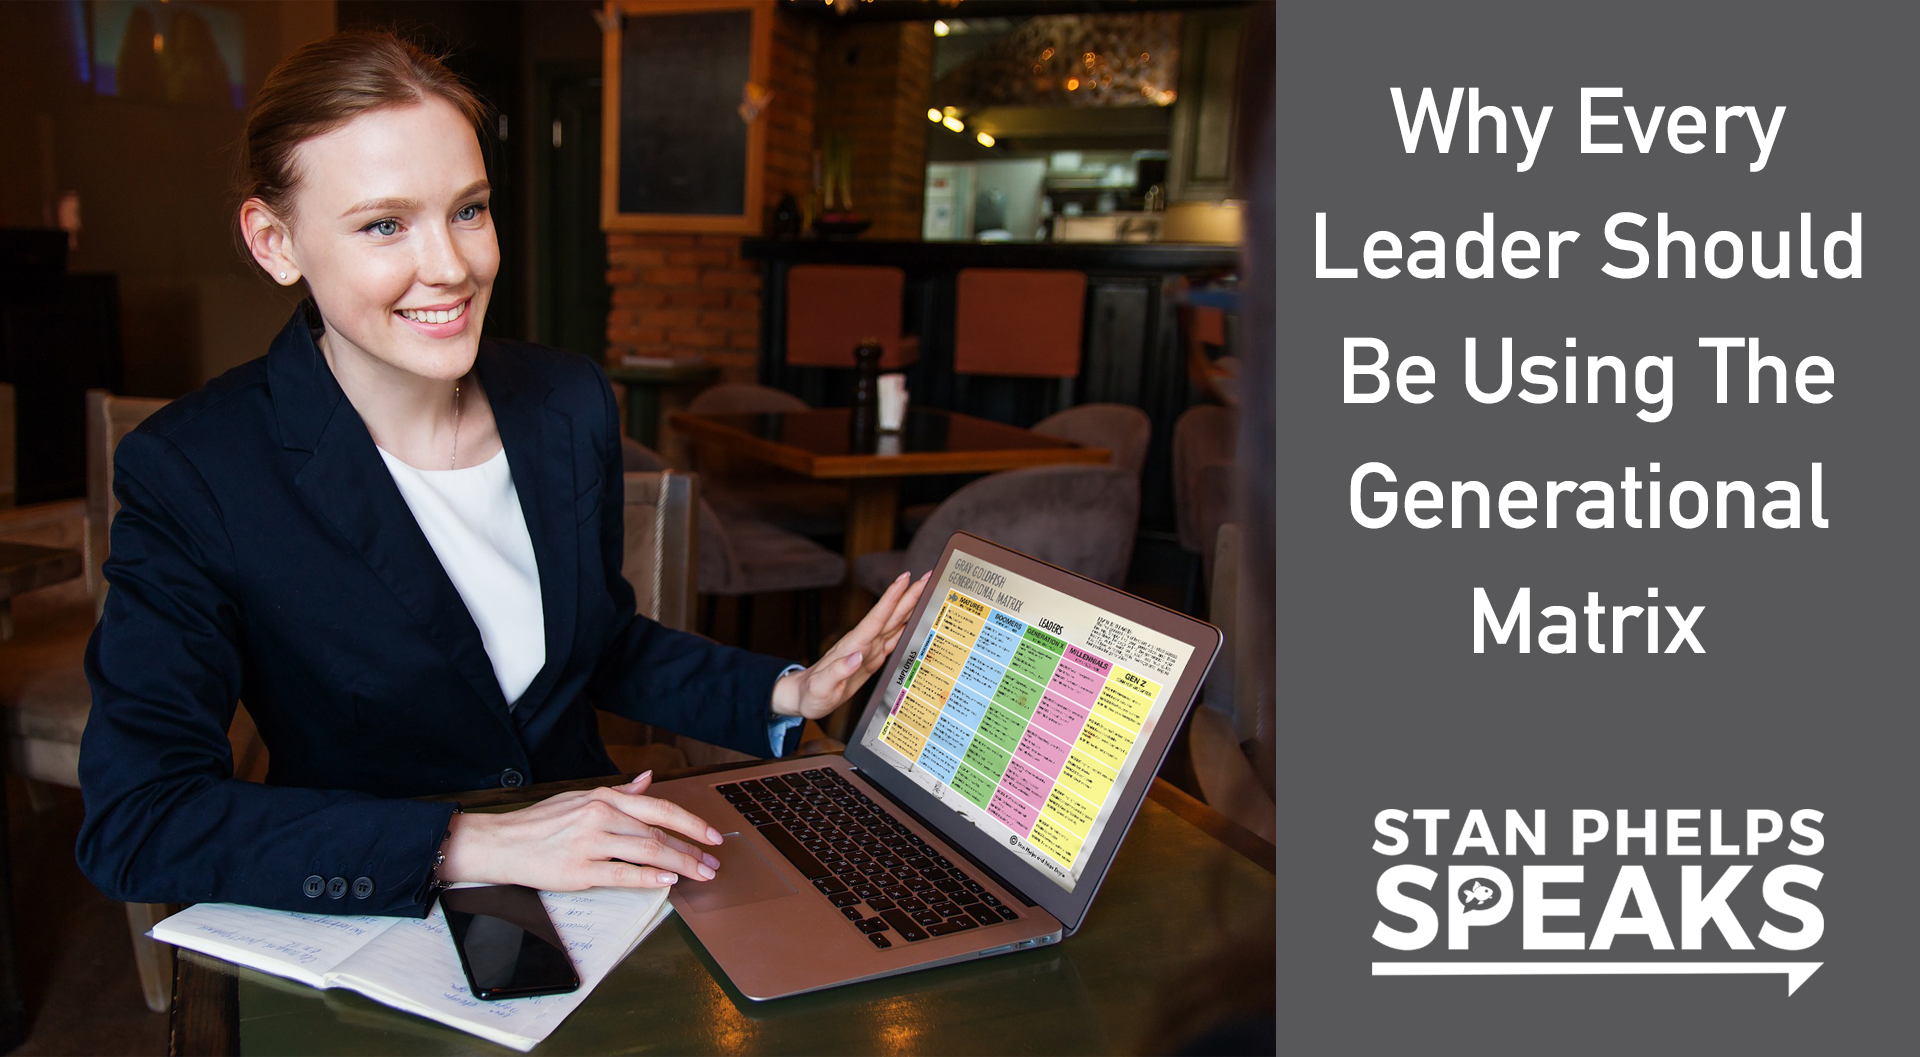 Why Every Leader Should Be Using The Generational Matrix